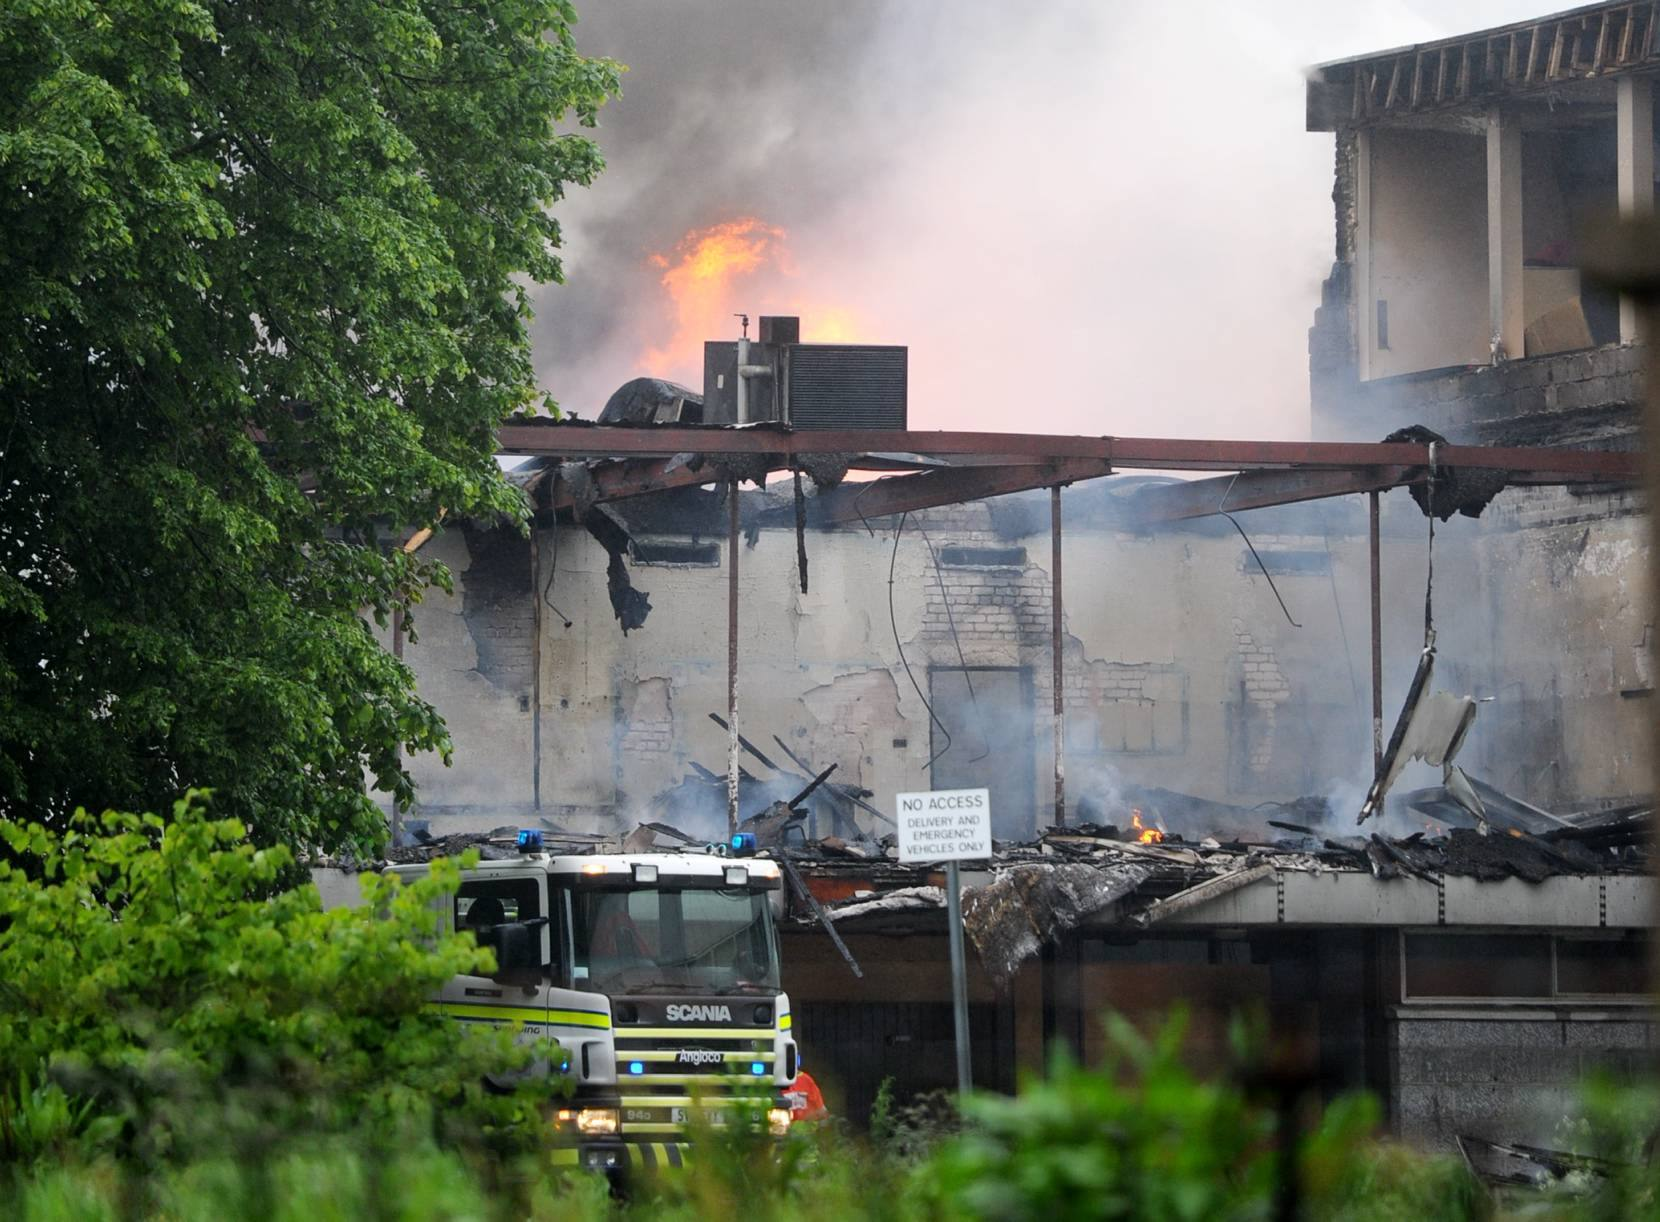 EMERGENCY:  In 2012 the old Bankhead Academy building was devastated by fire.